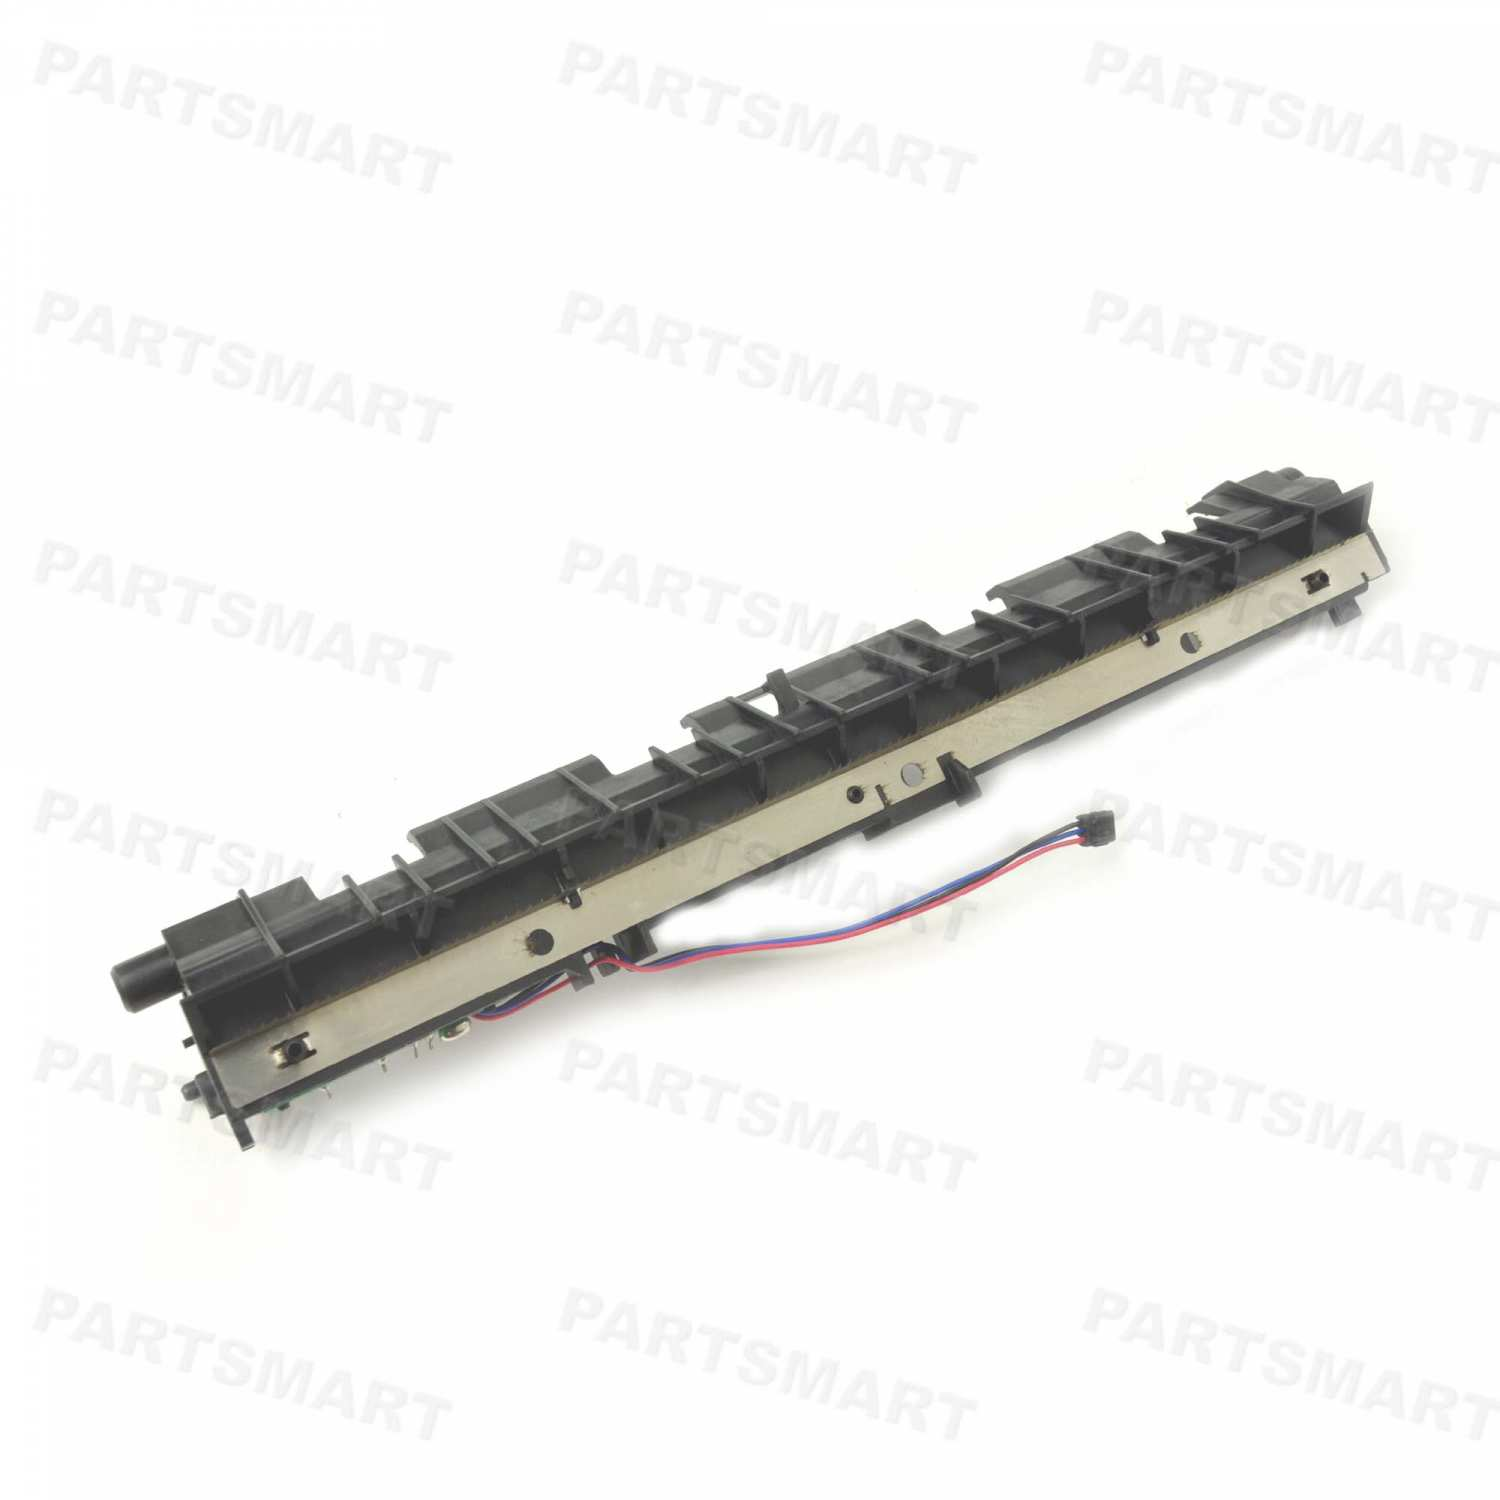 RC3-2453-000 Lower Delivery Guide for HP LaserJet Pro 400 M401